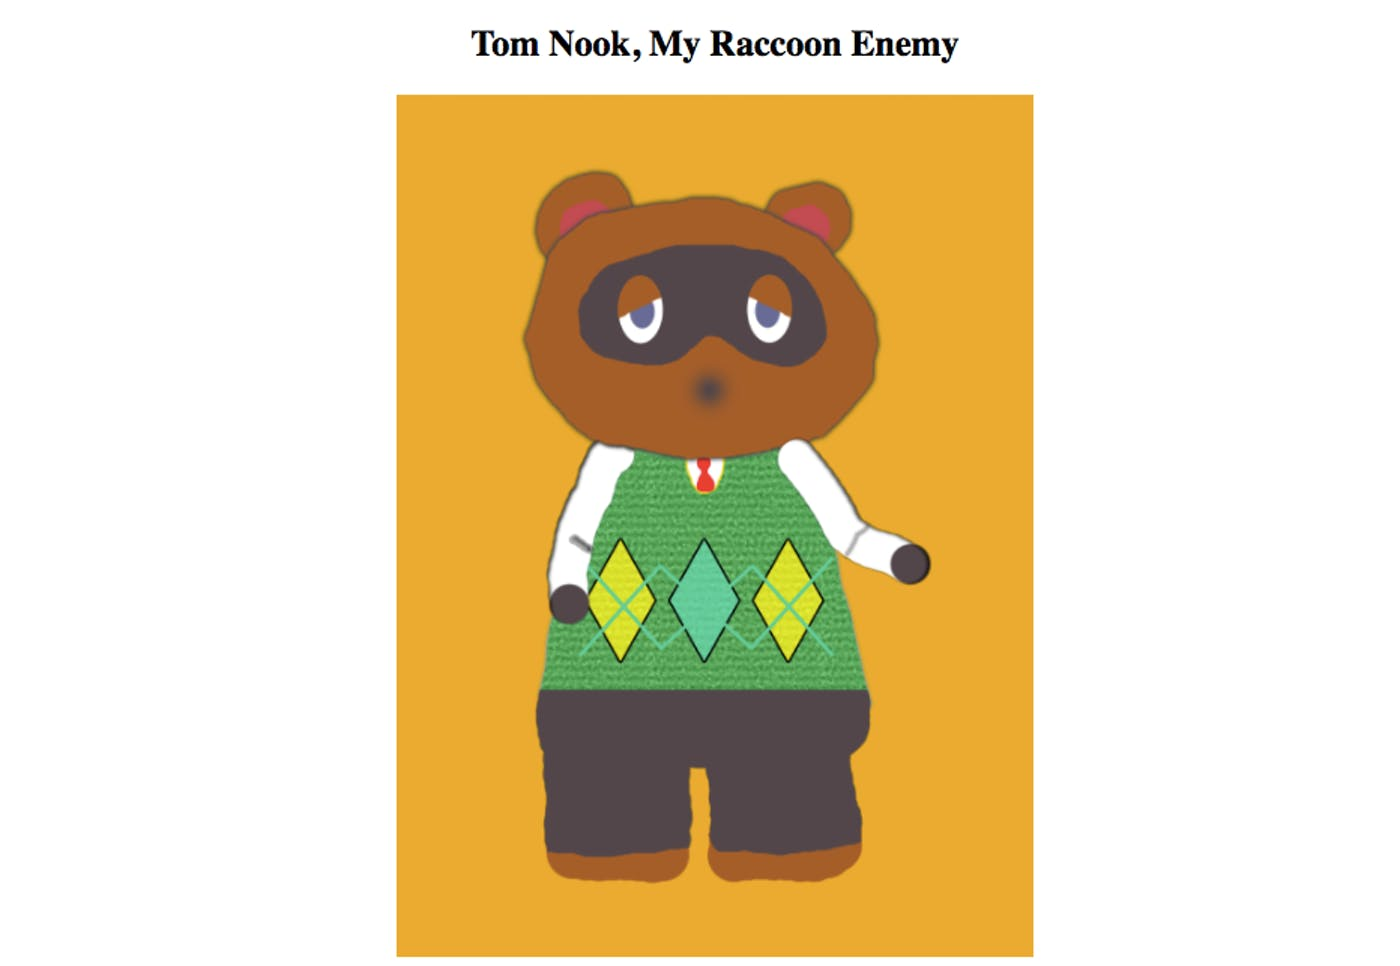 Why Animal Crossing's Tom Nook is an Evil Capitalist Villain | Inverse